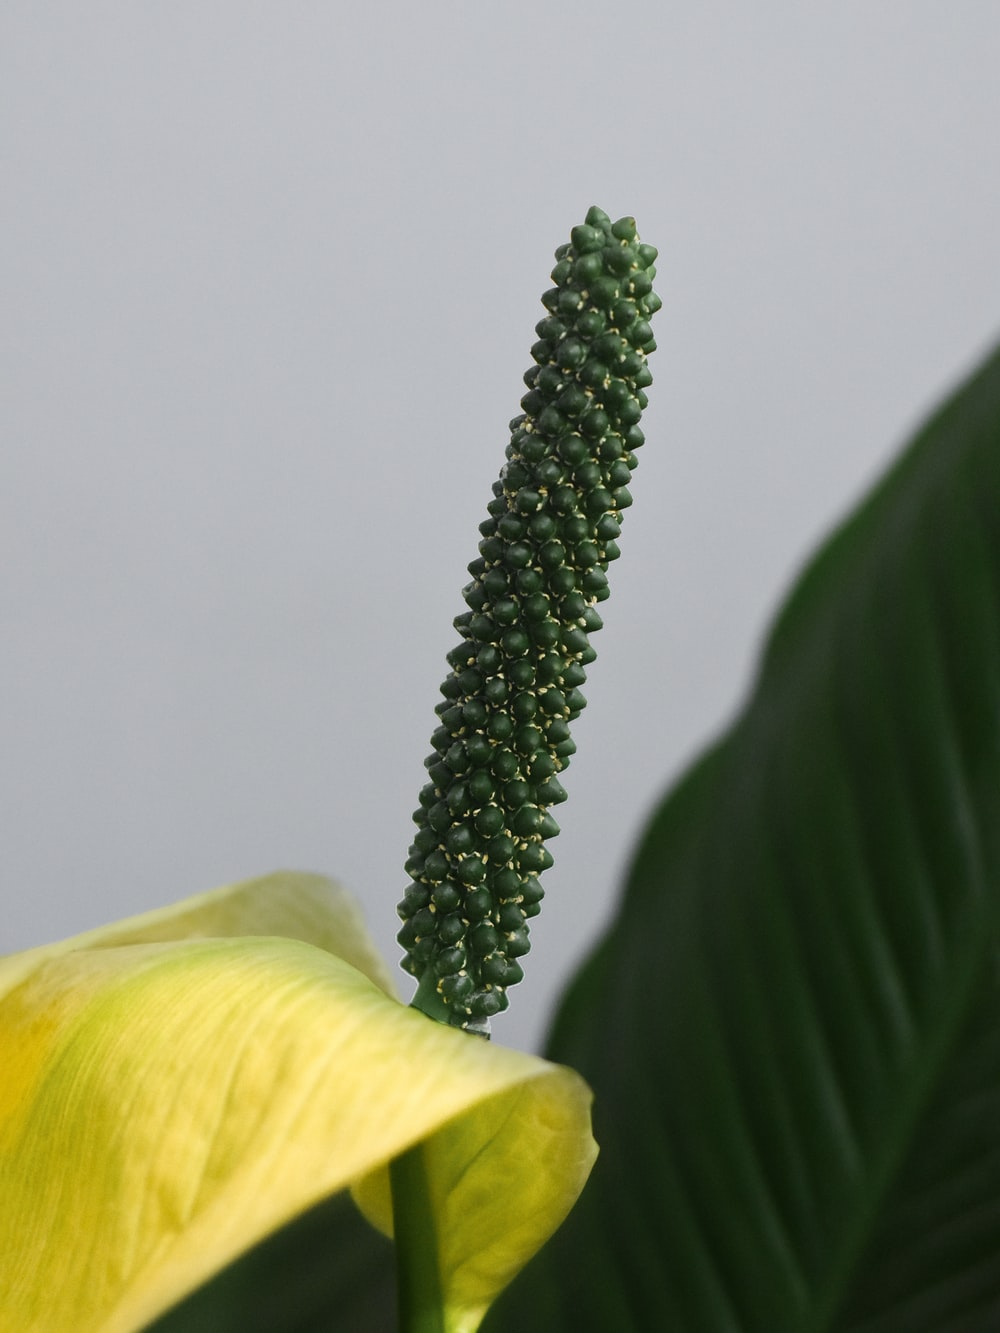 green cactus plant beside yellow flower